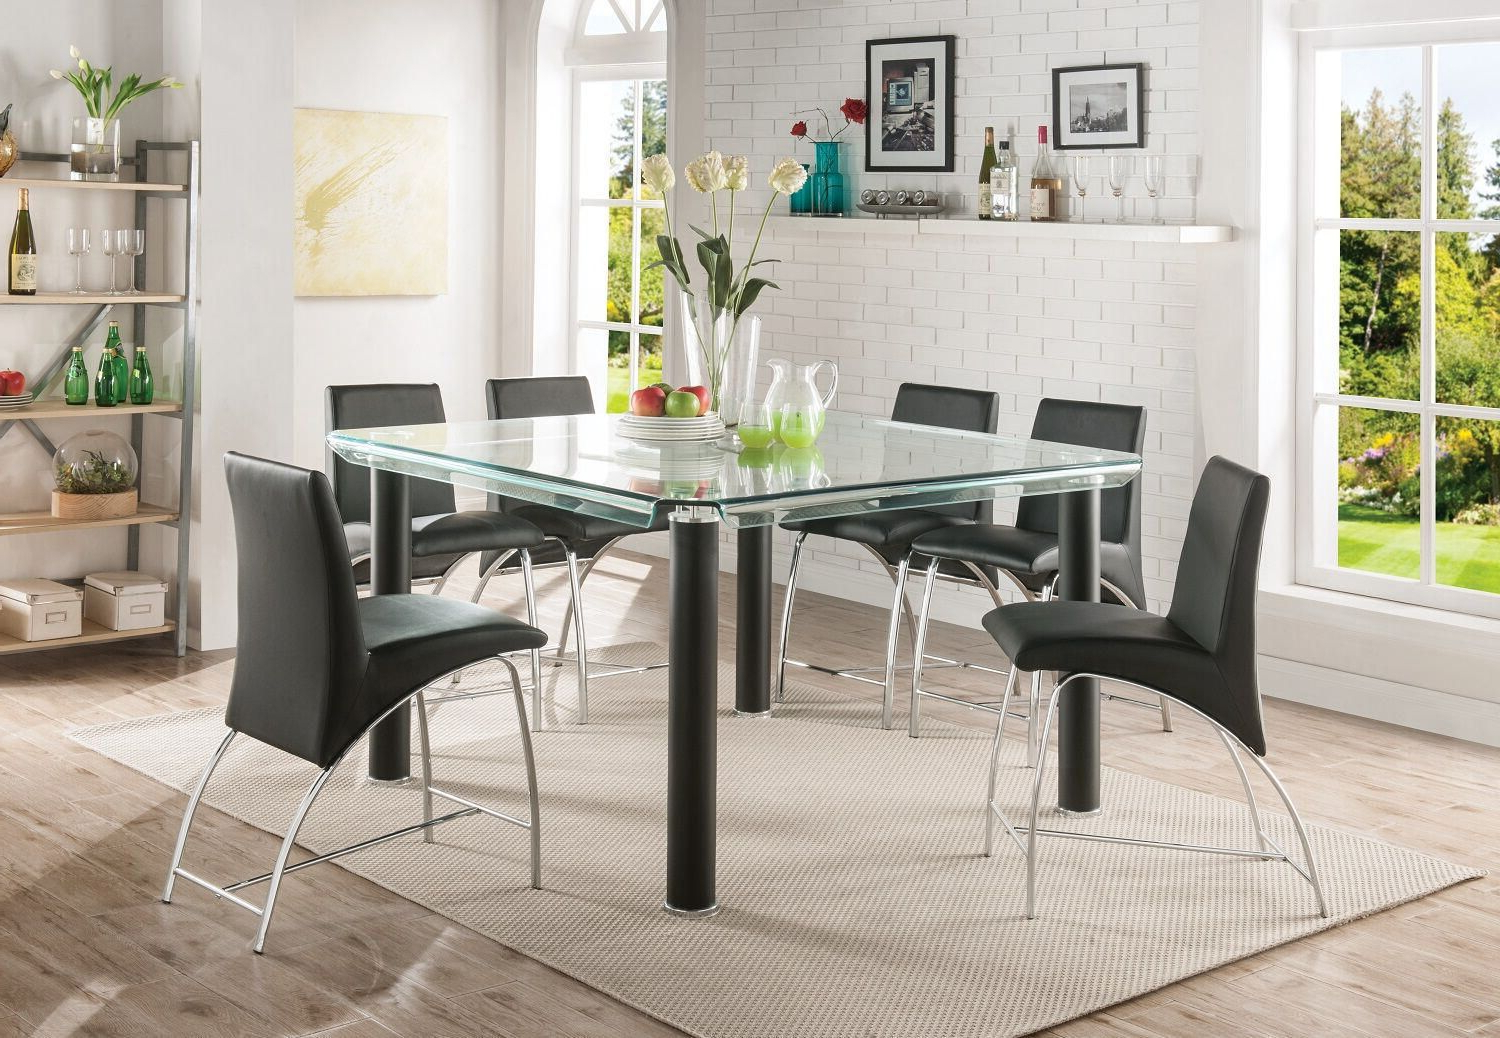 Best And Newest Acme Gordie Counter Height Table In Black & Clear Glass Pertaining To Artefac Contemporary Casual Dining Tables (View 19 of 25)